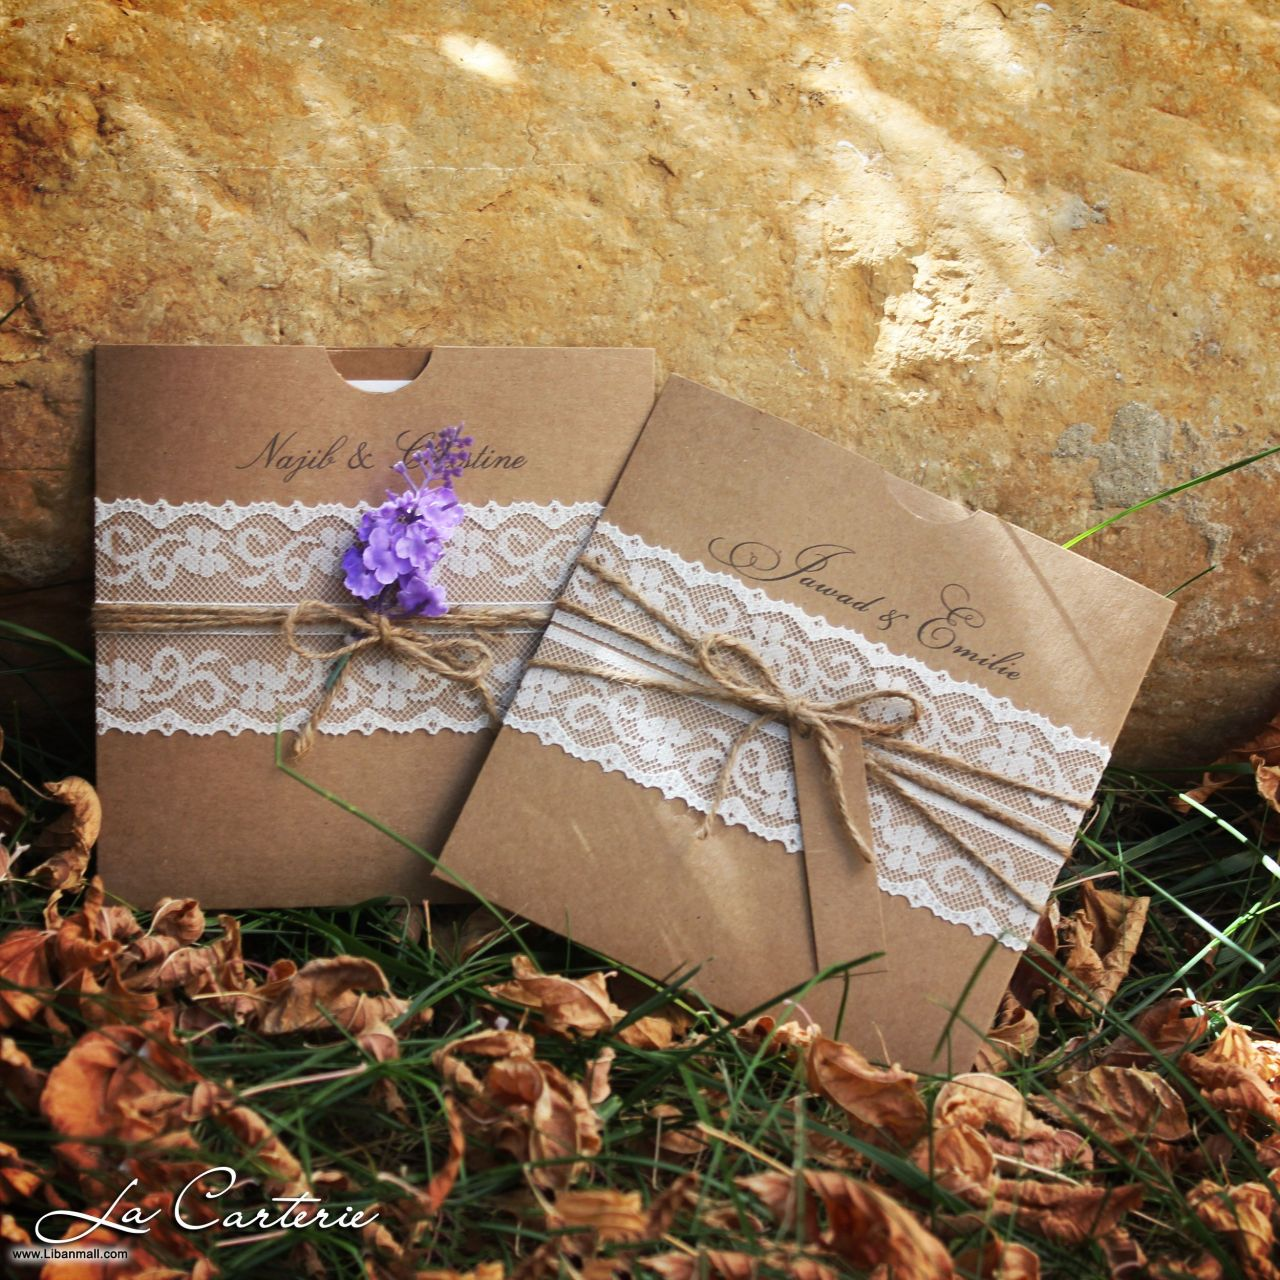 La Carterie, wedding cards in Lebanon, Lebanon wedding cards